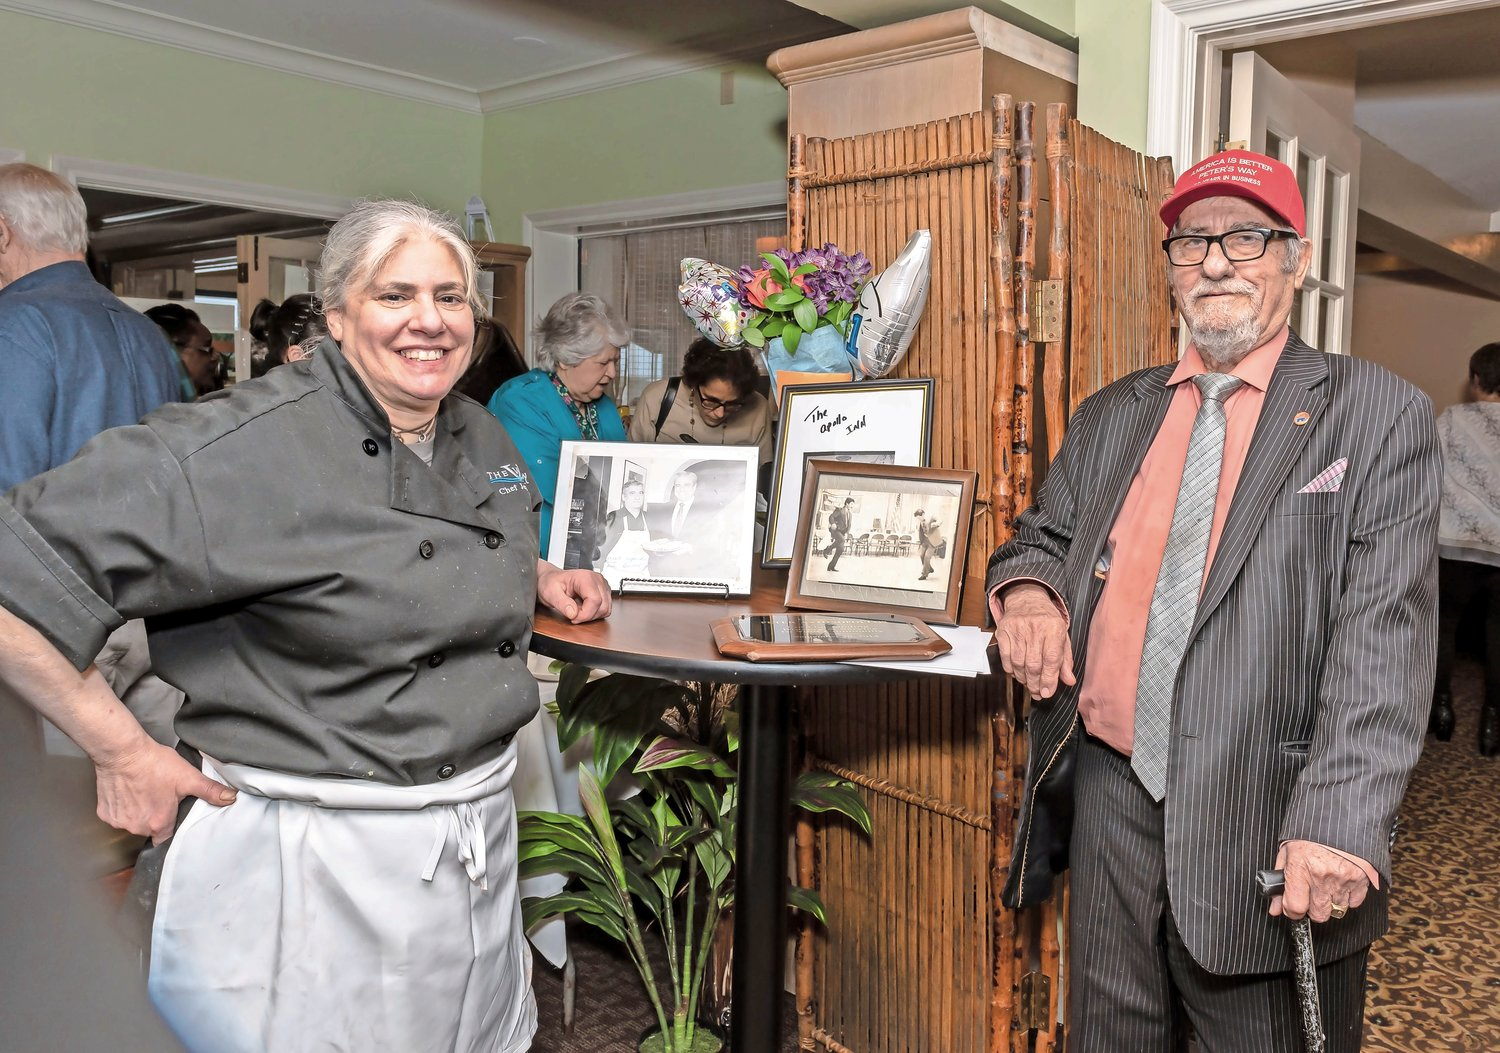 Jeanine DiMenna, the chef and co-owner at The View Grill, and co-owner Peter Antonopoulos, whom she credits with changing her life. A celebration at the restaurant last Sunday marked Antonopoulos's 50 years in business at a variety of Glen Cove eateries.